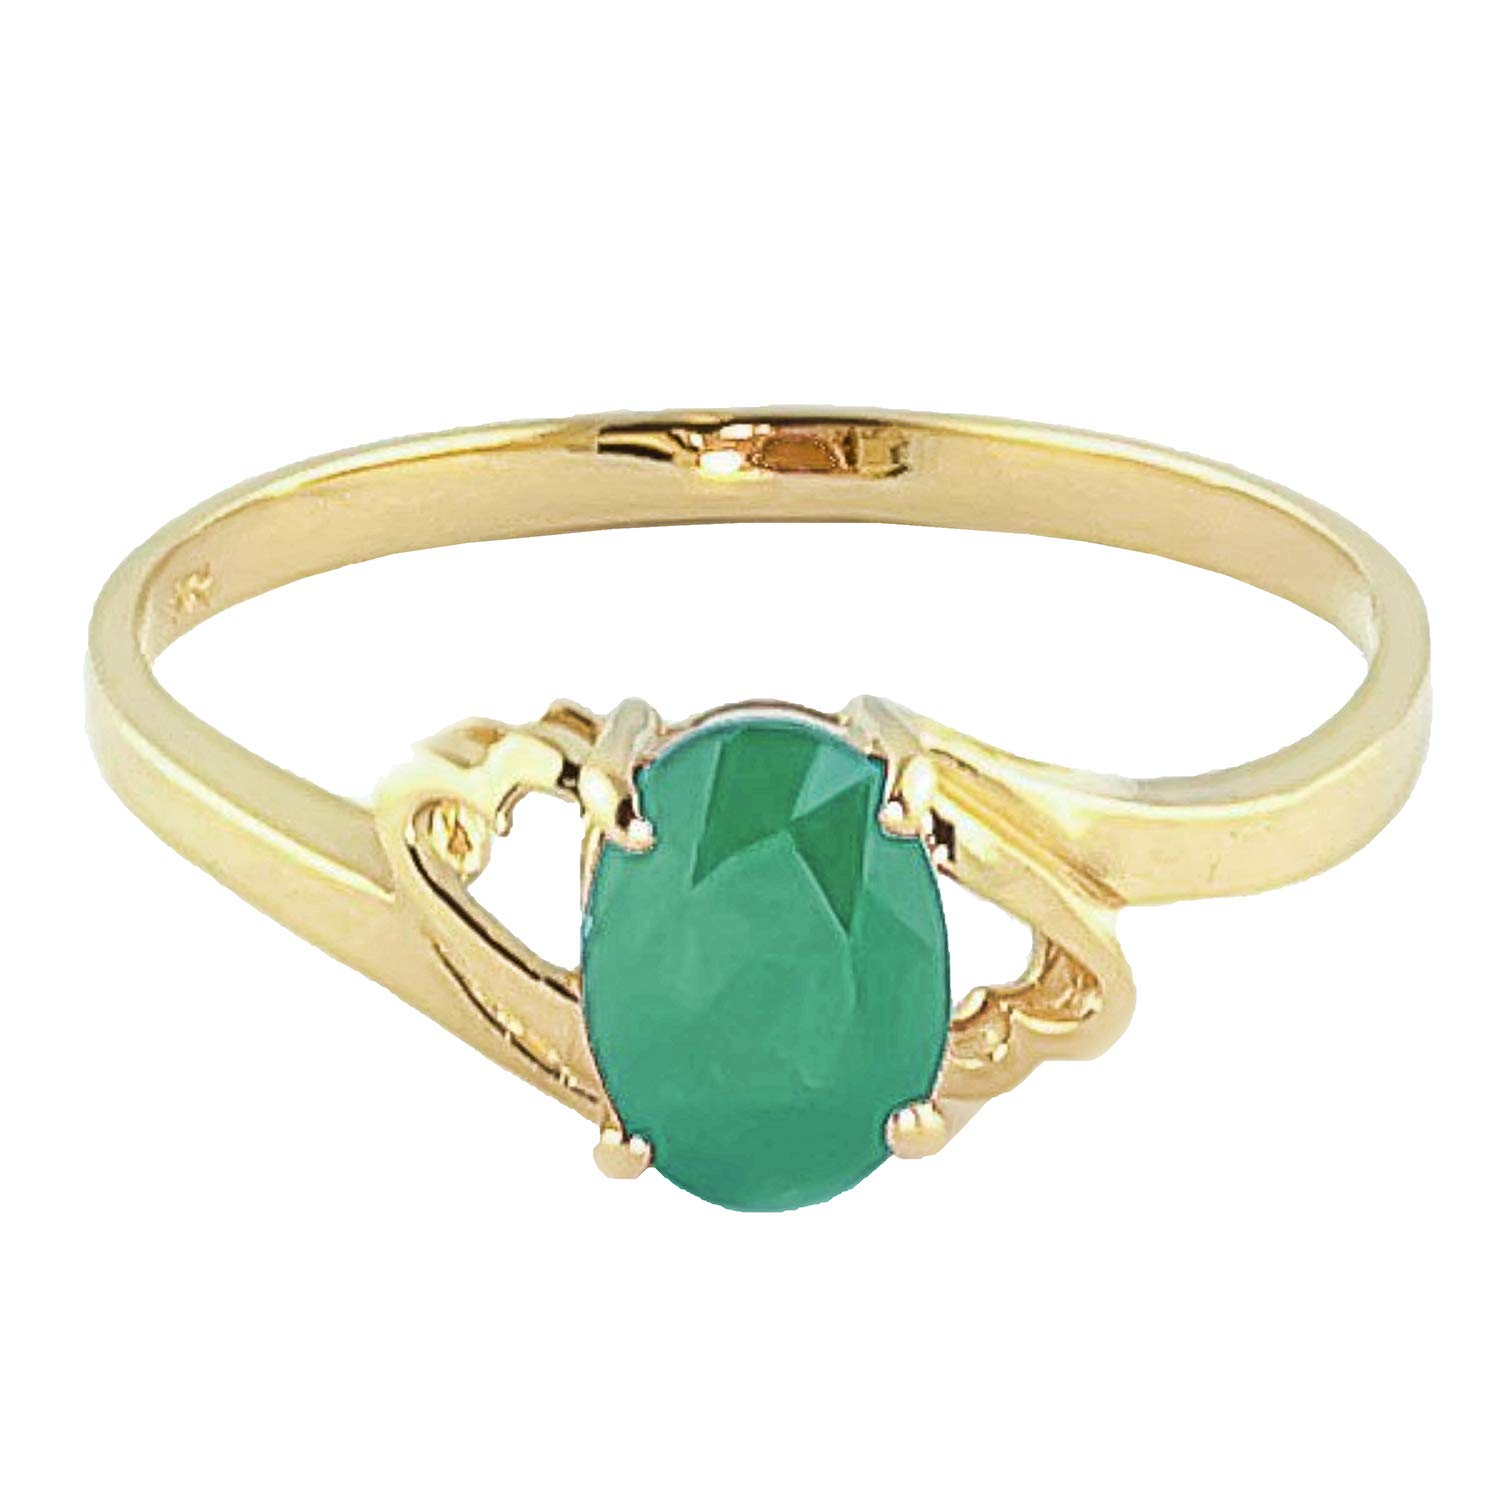 14k Yellow Gold Natural Emerald Ring - Size 6.0 by Galaxy Gold